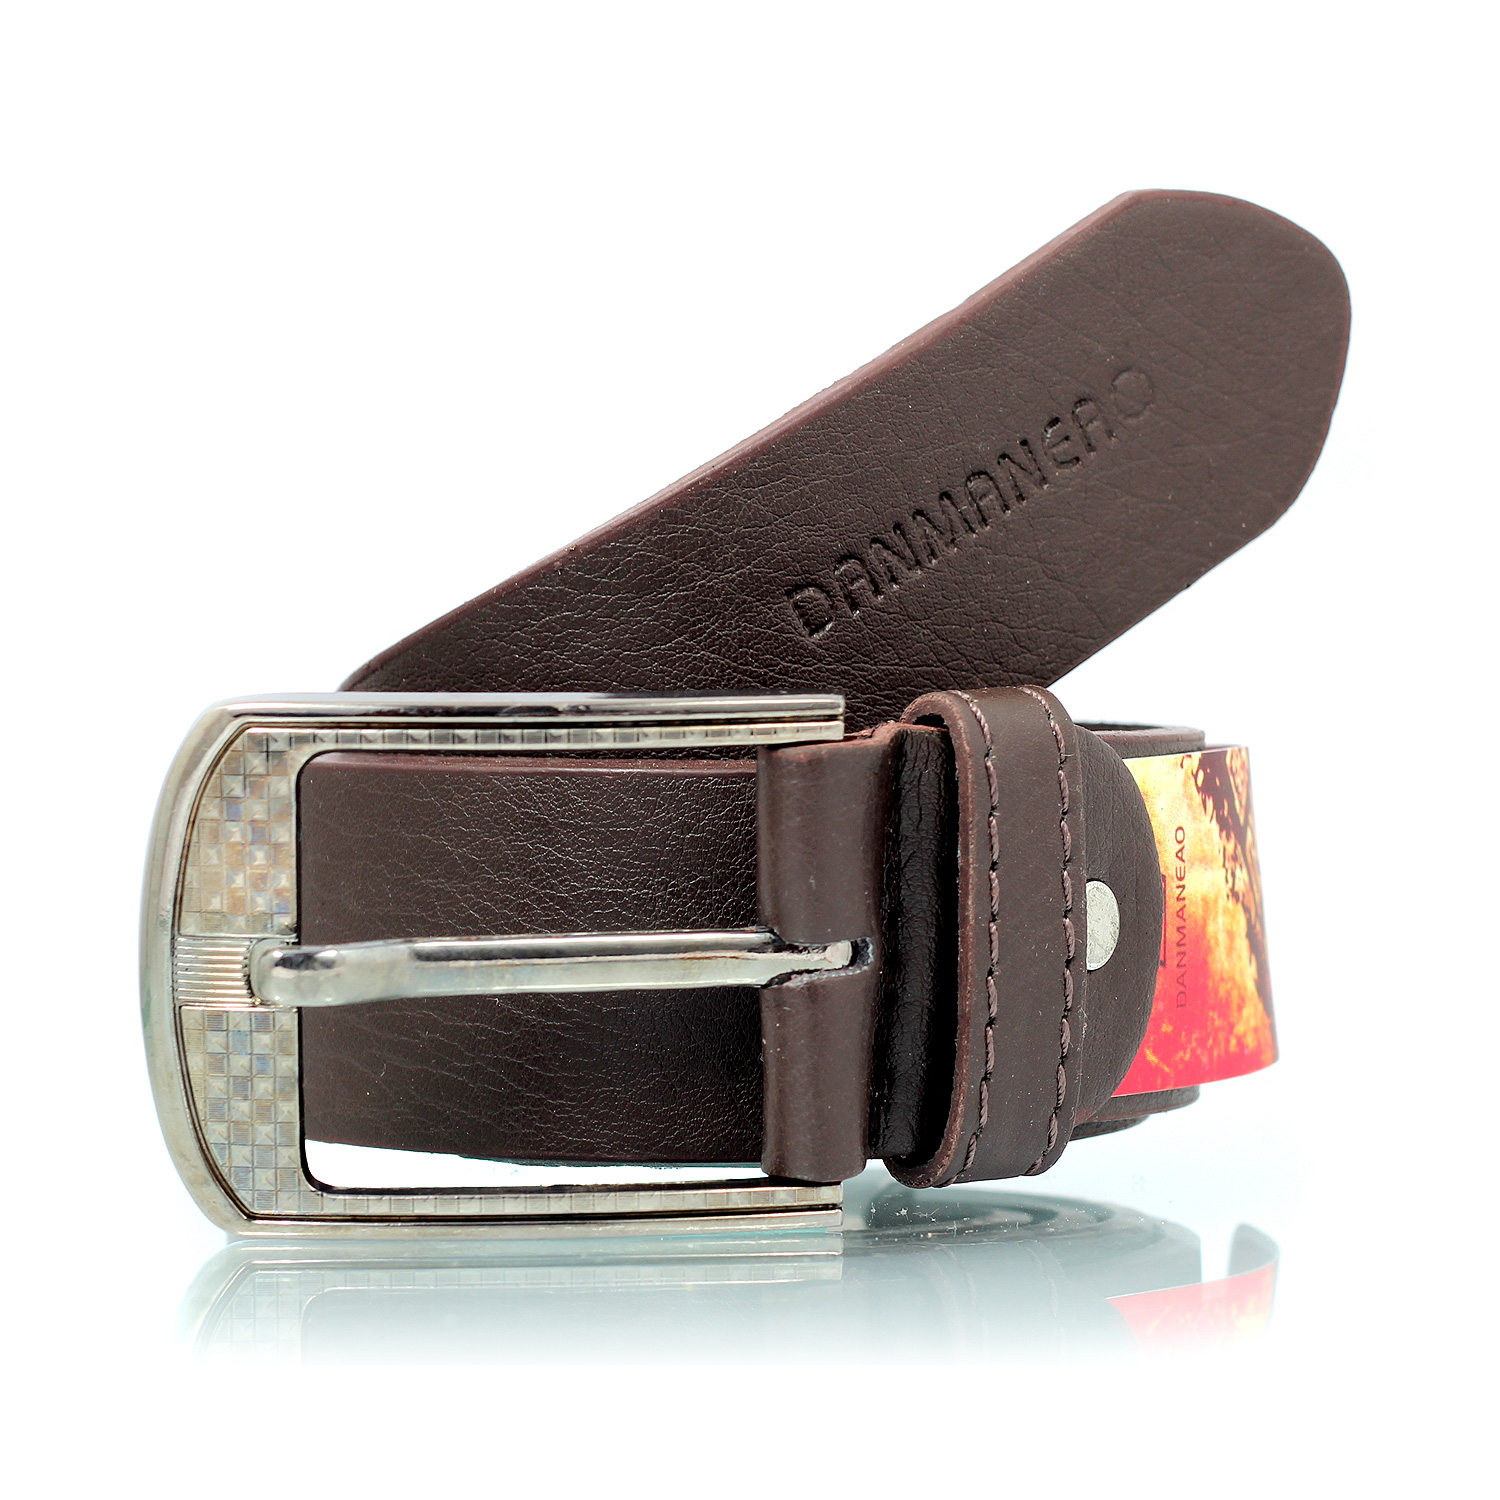 Danmaneao Printed Formal Leather Belt